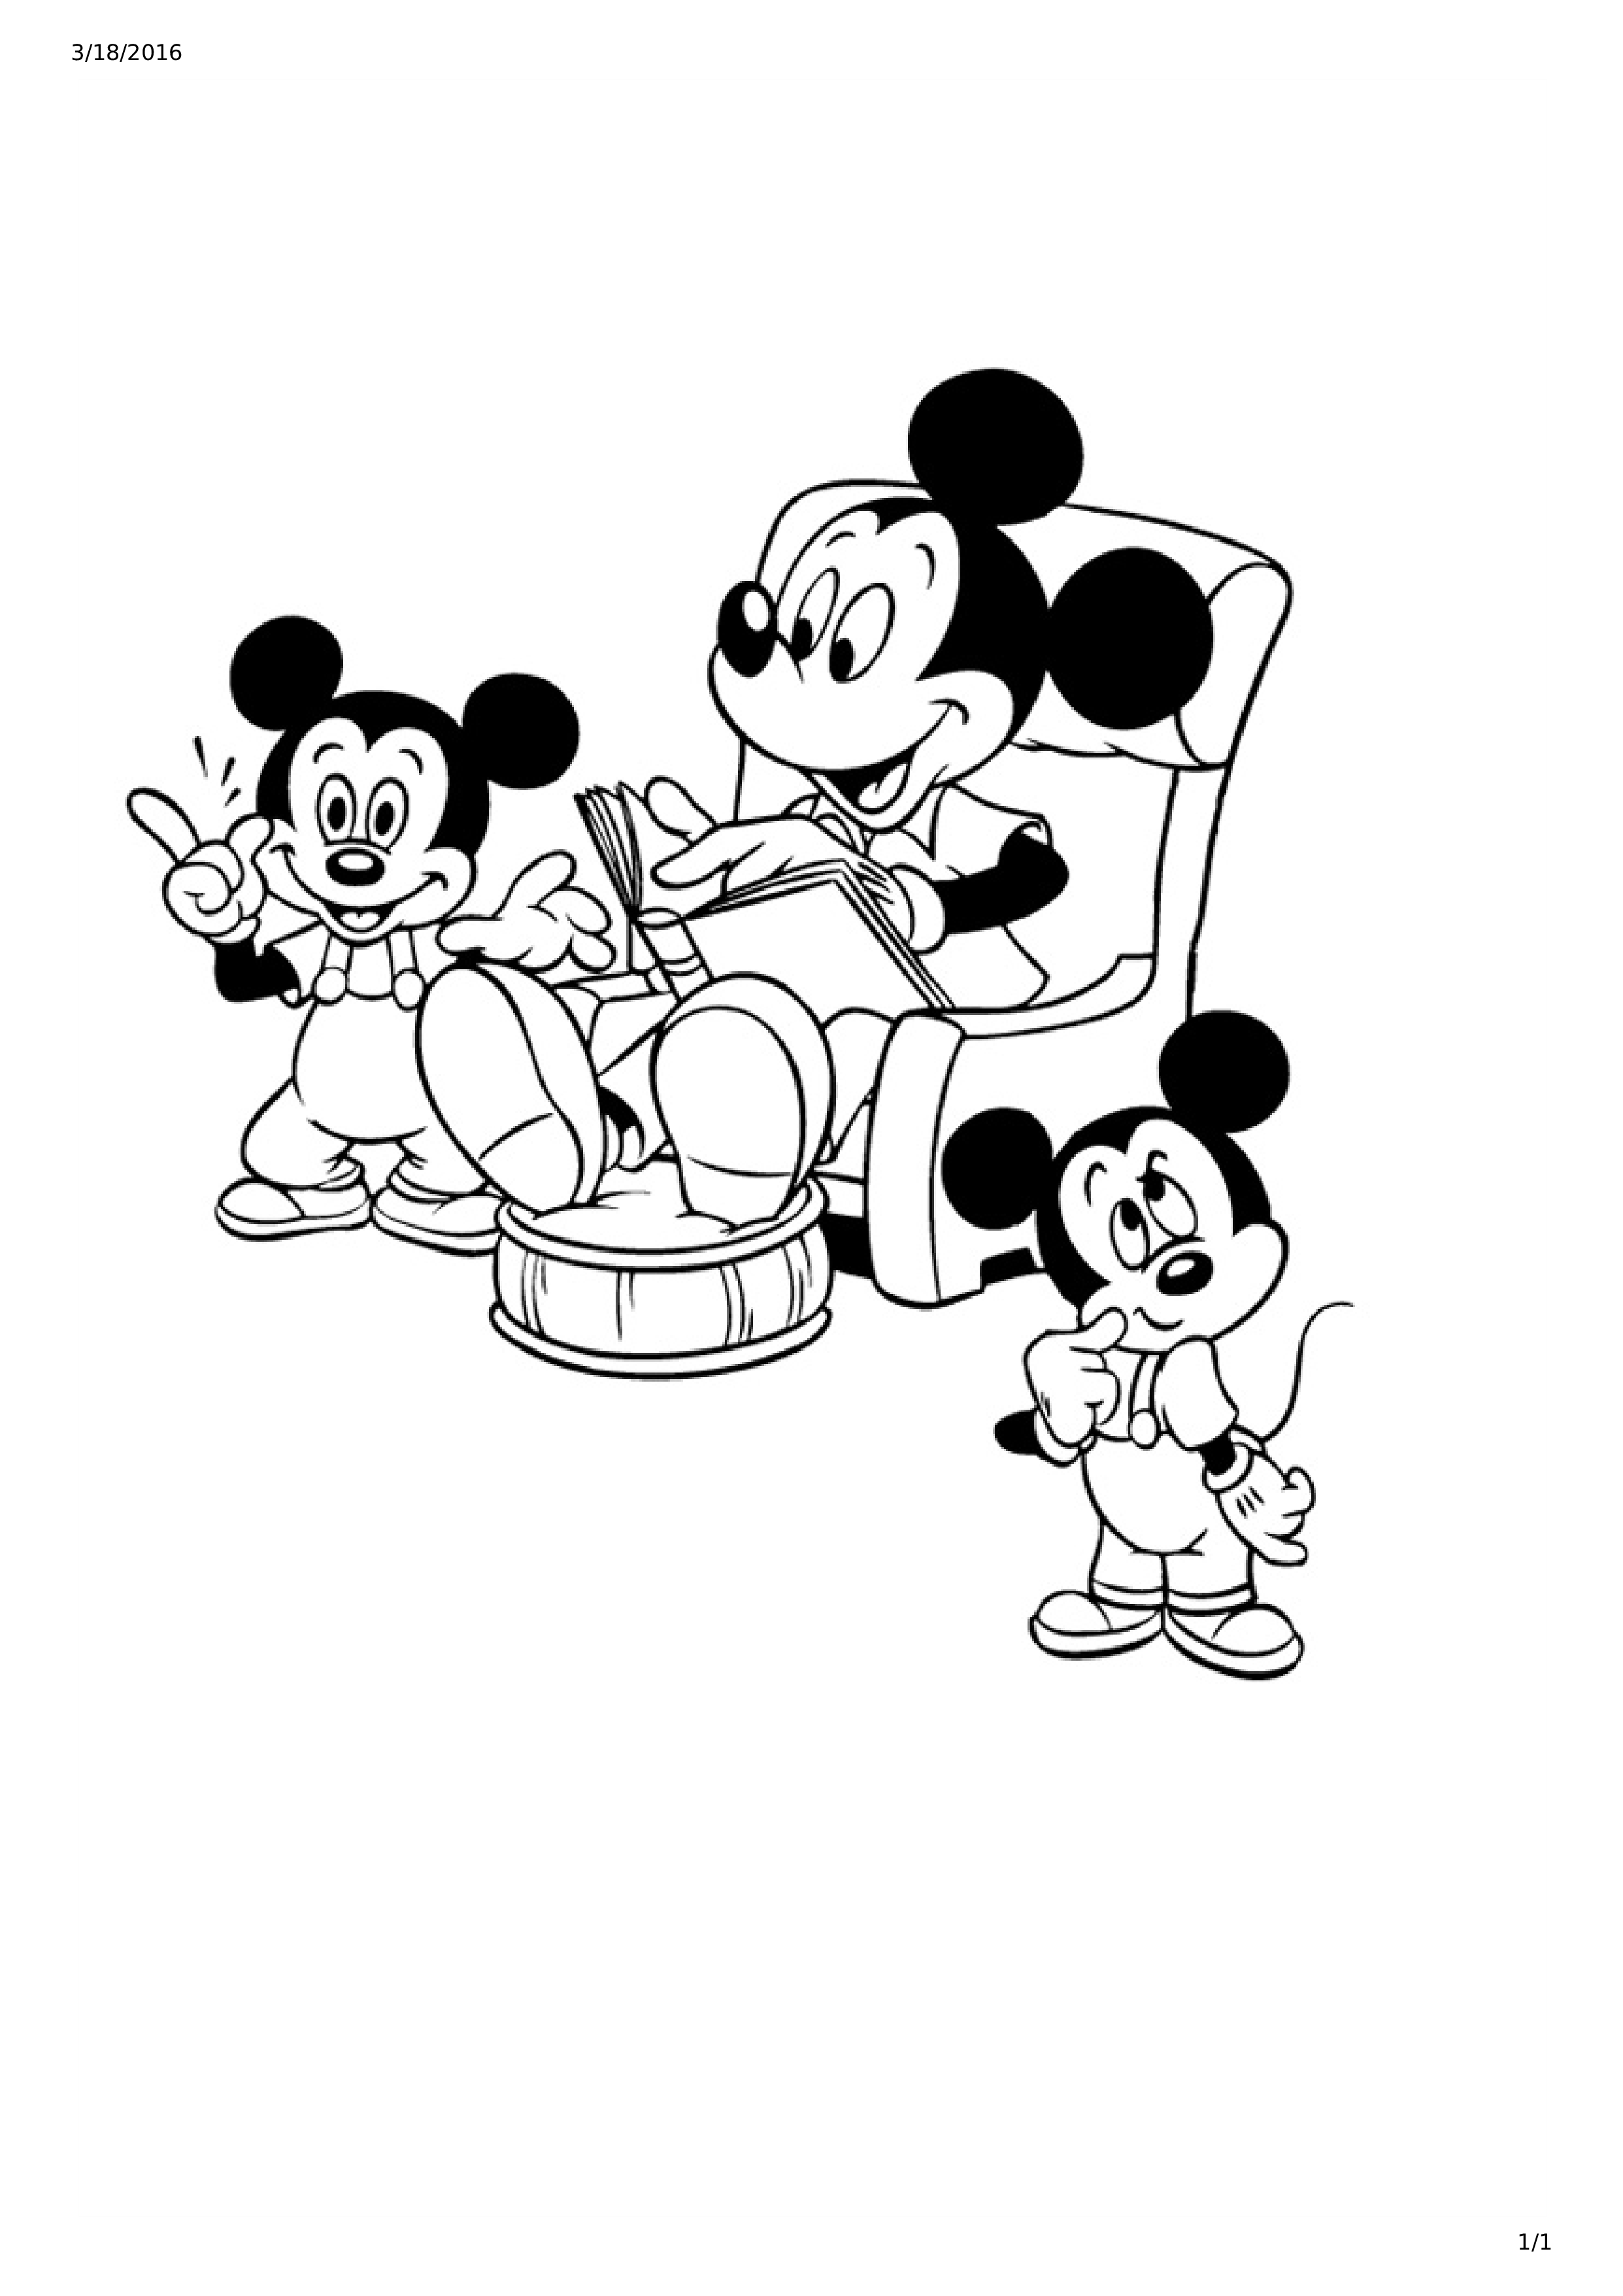 mickey mouse and friends coloring page for kids mickey mouse and friends coloring page for kids easy to download and use directly printable